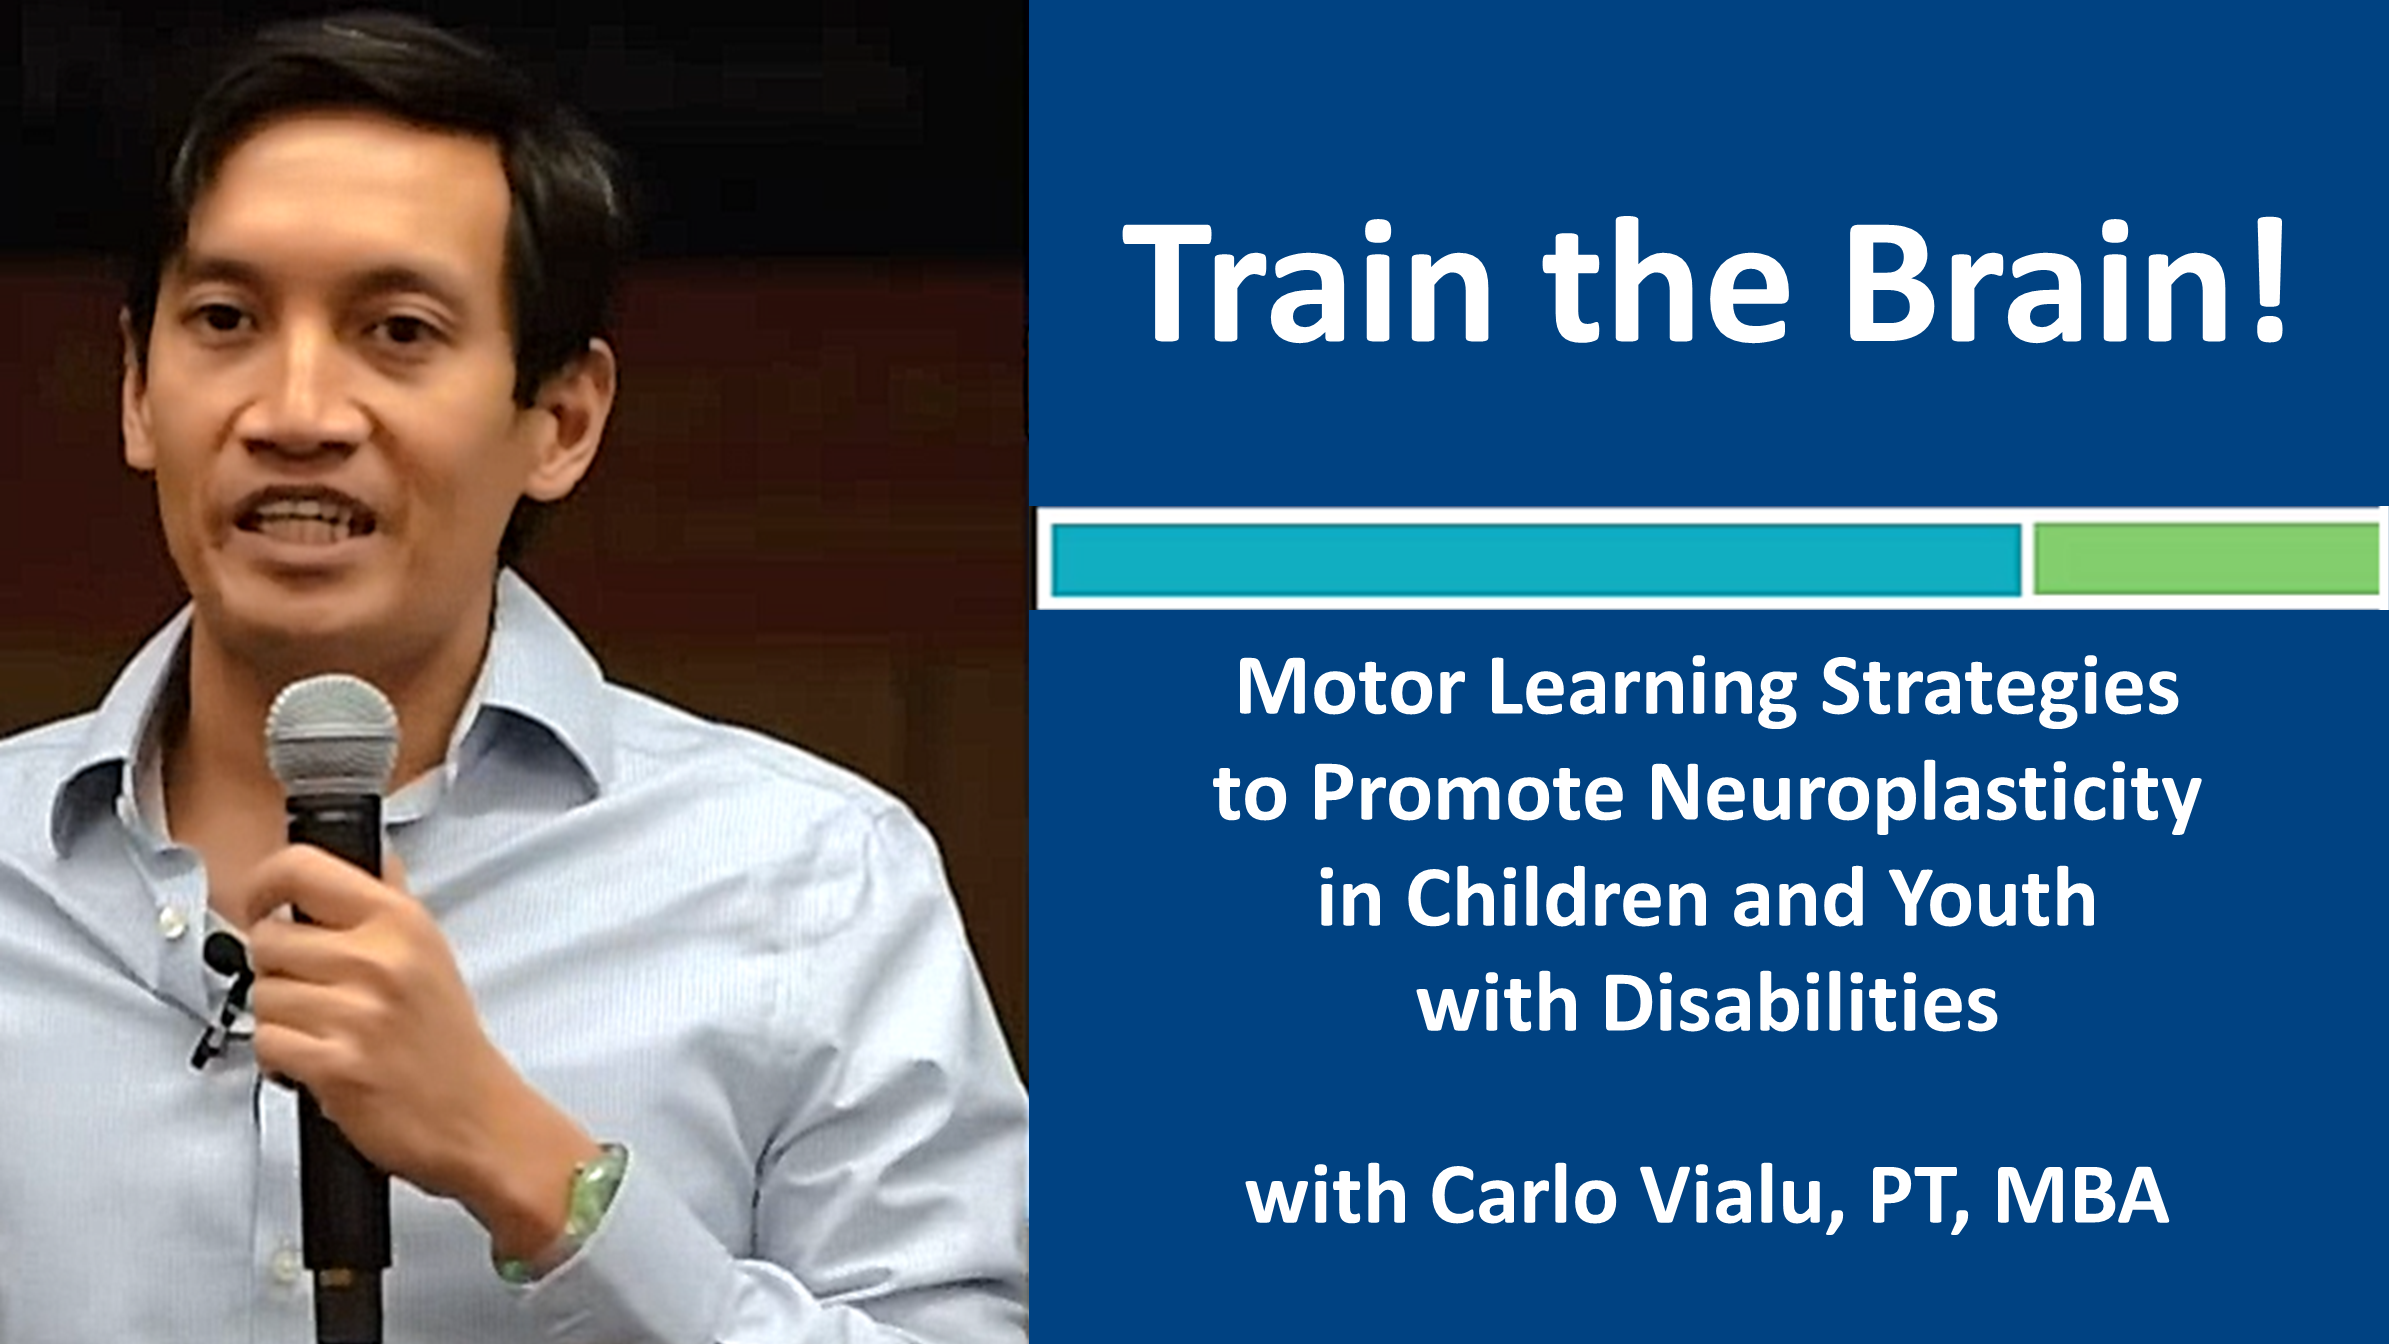 Webinar 2: Train the Brain with Carlo Vialu, PT, MBA